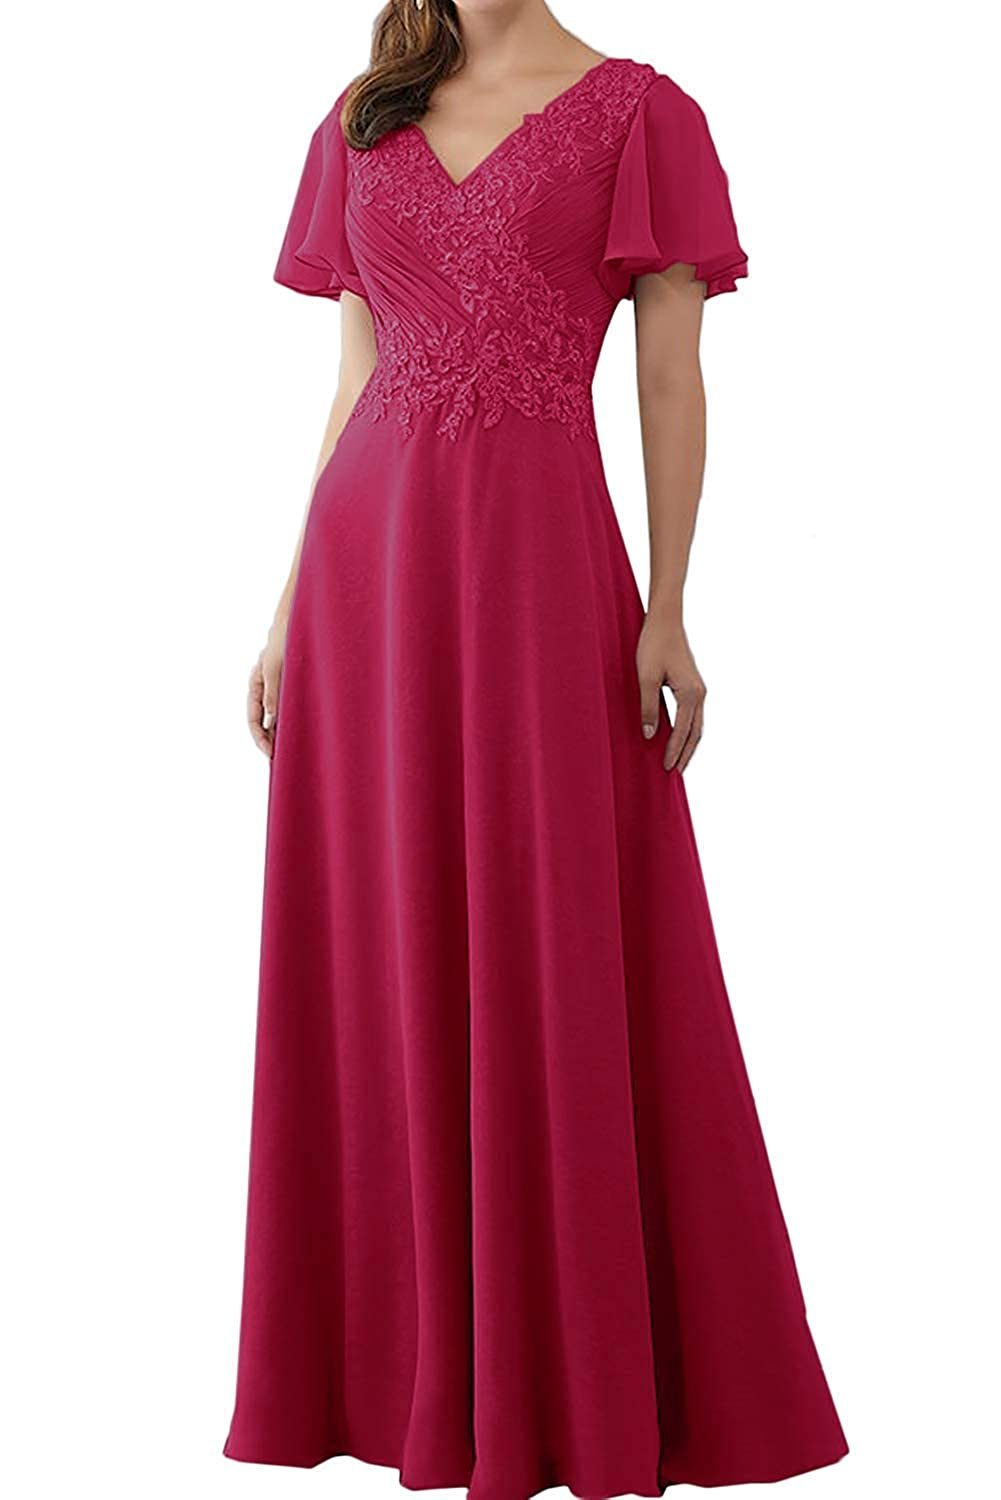 DressyMe Womens Modest Long Mother of Bride Dresses with Sleeves Pleated